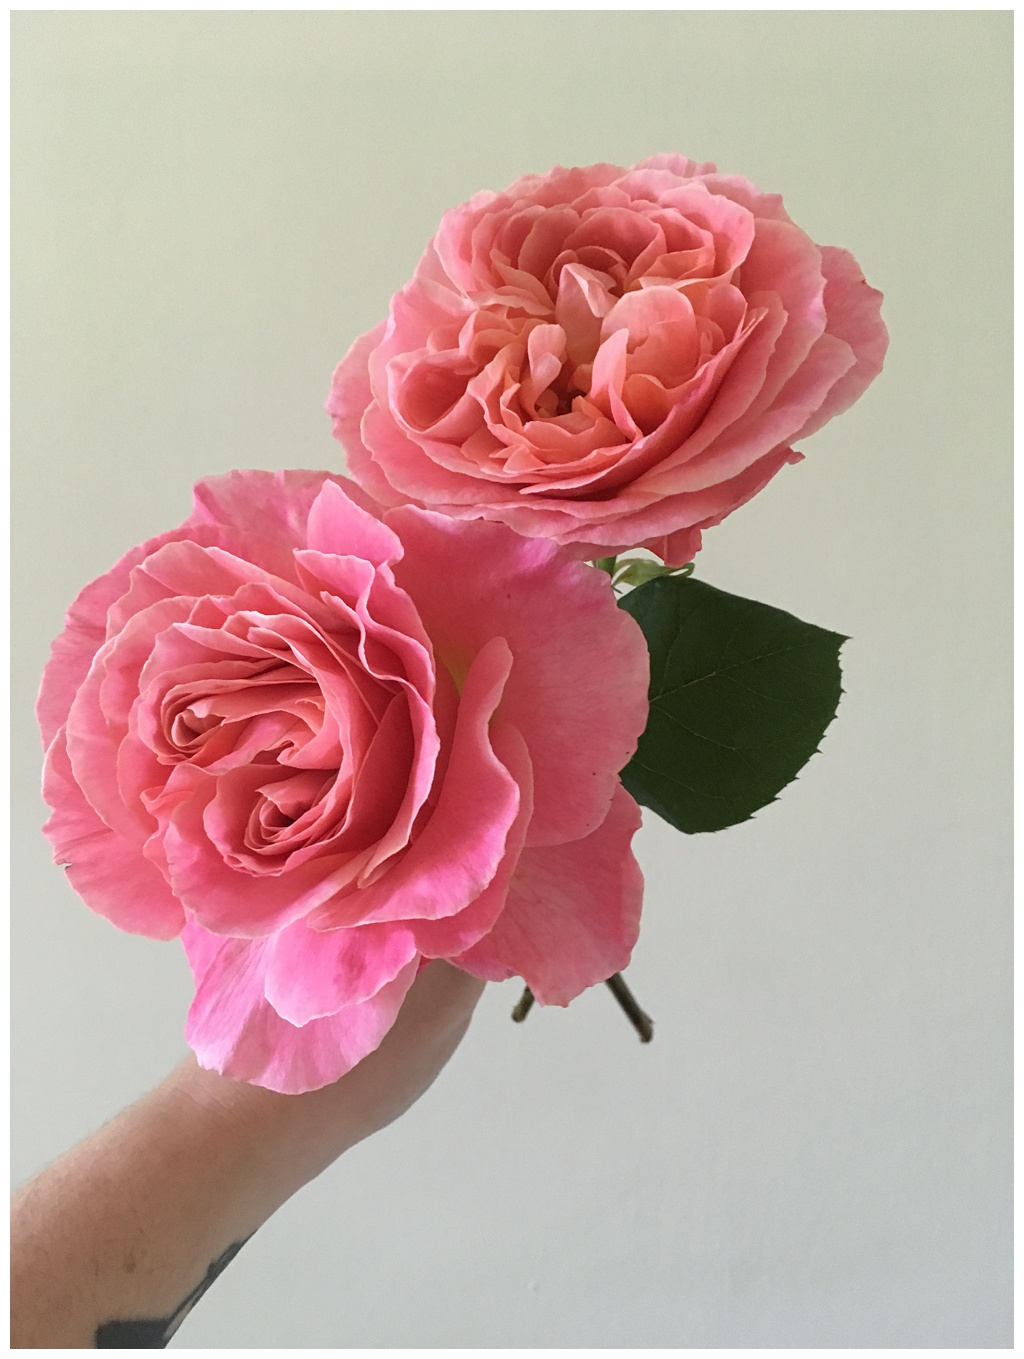 pink garden roses being held against a white wall, fresh from the garden